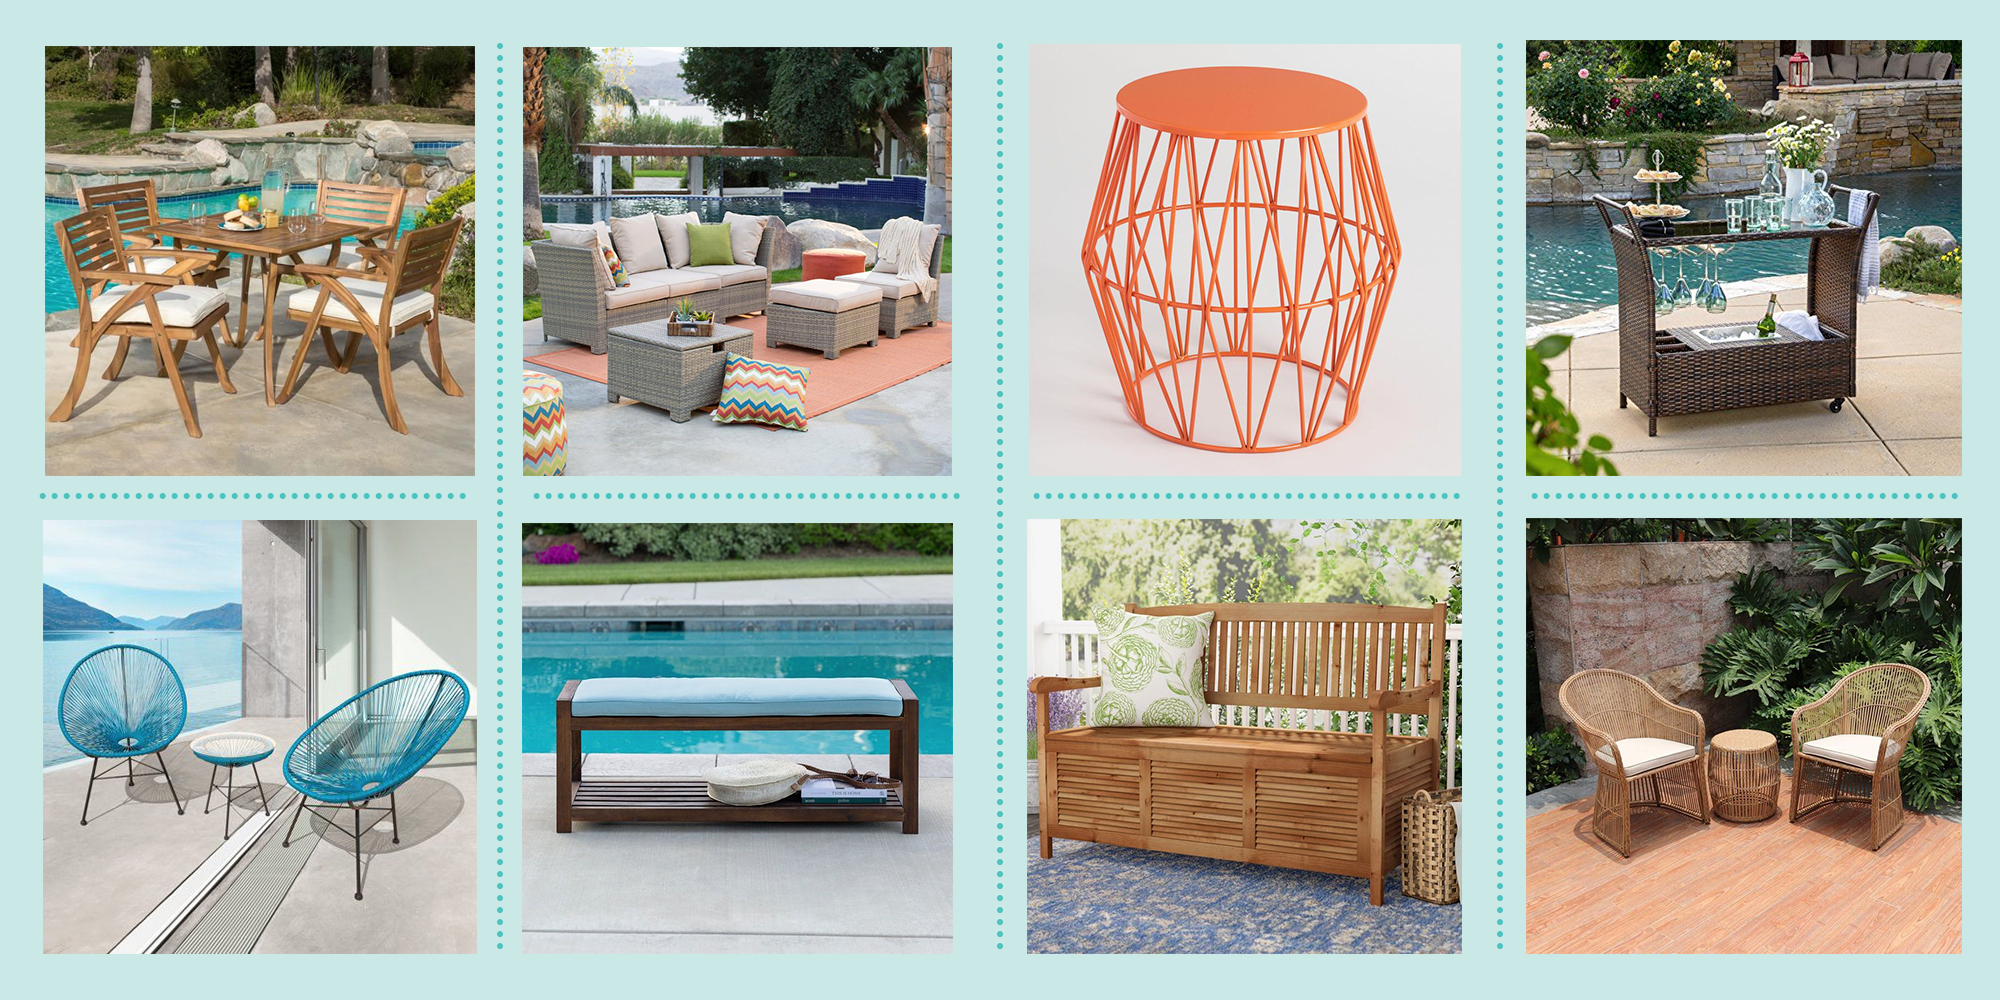 Best Outdoor Furniture 14 - Where to Buy Outdoor Patio Furniture